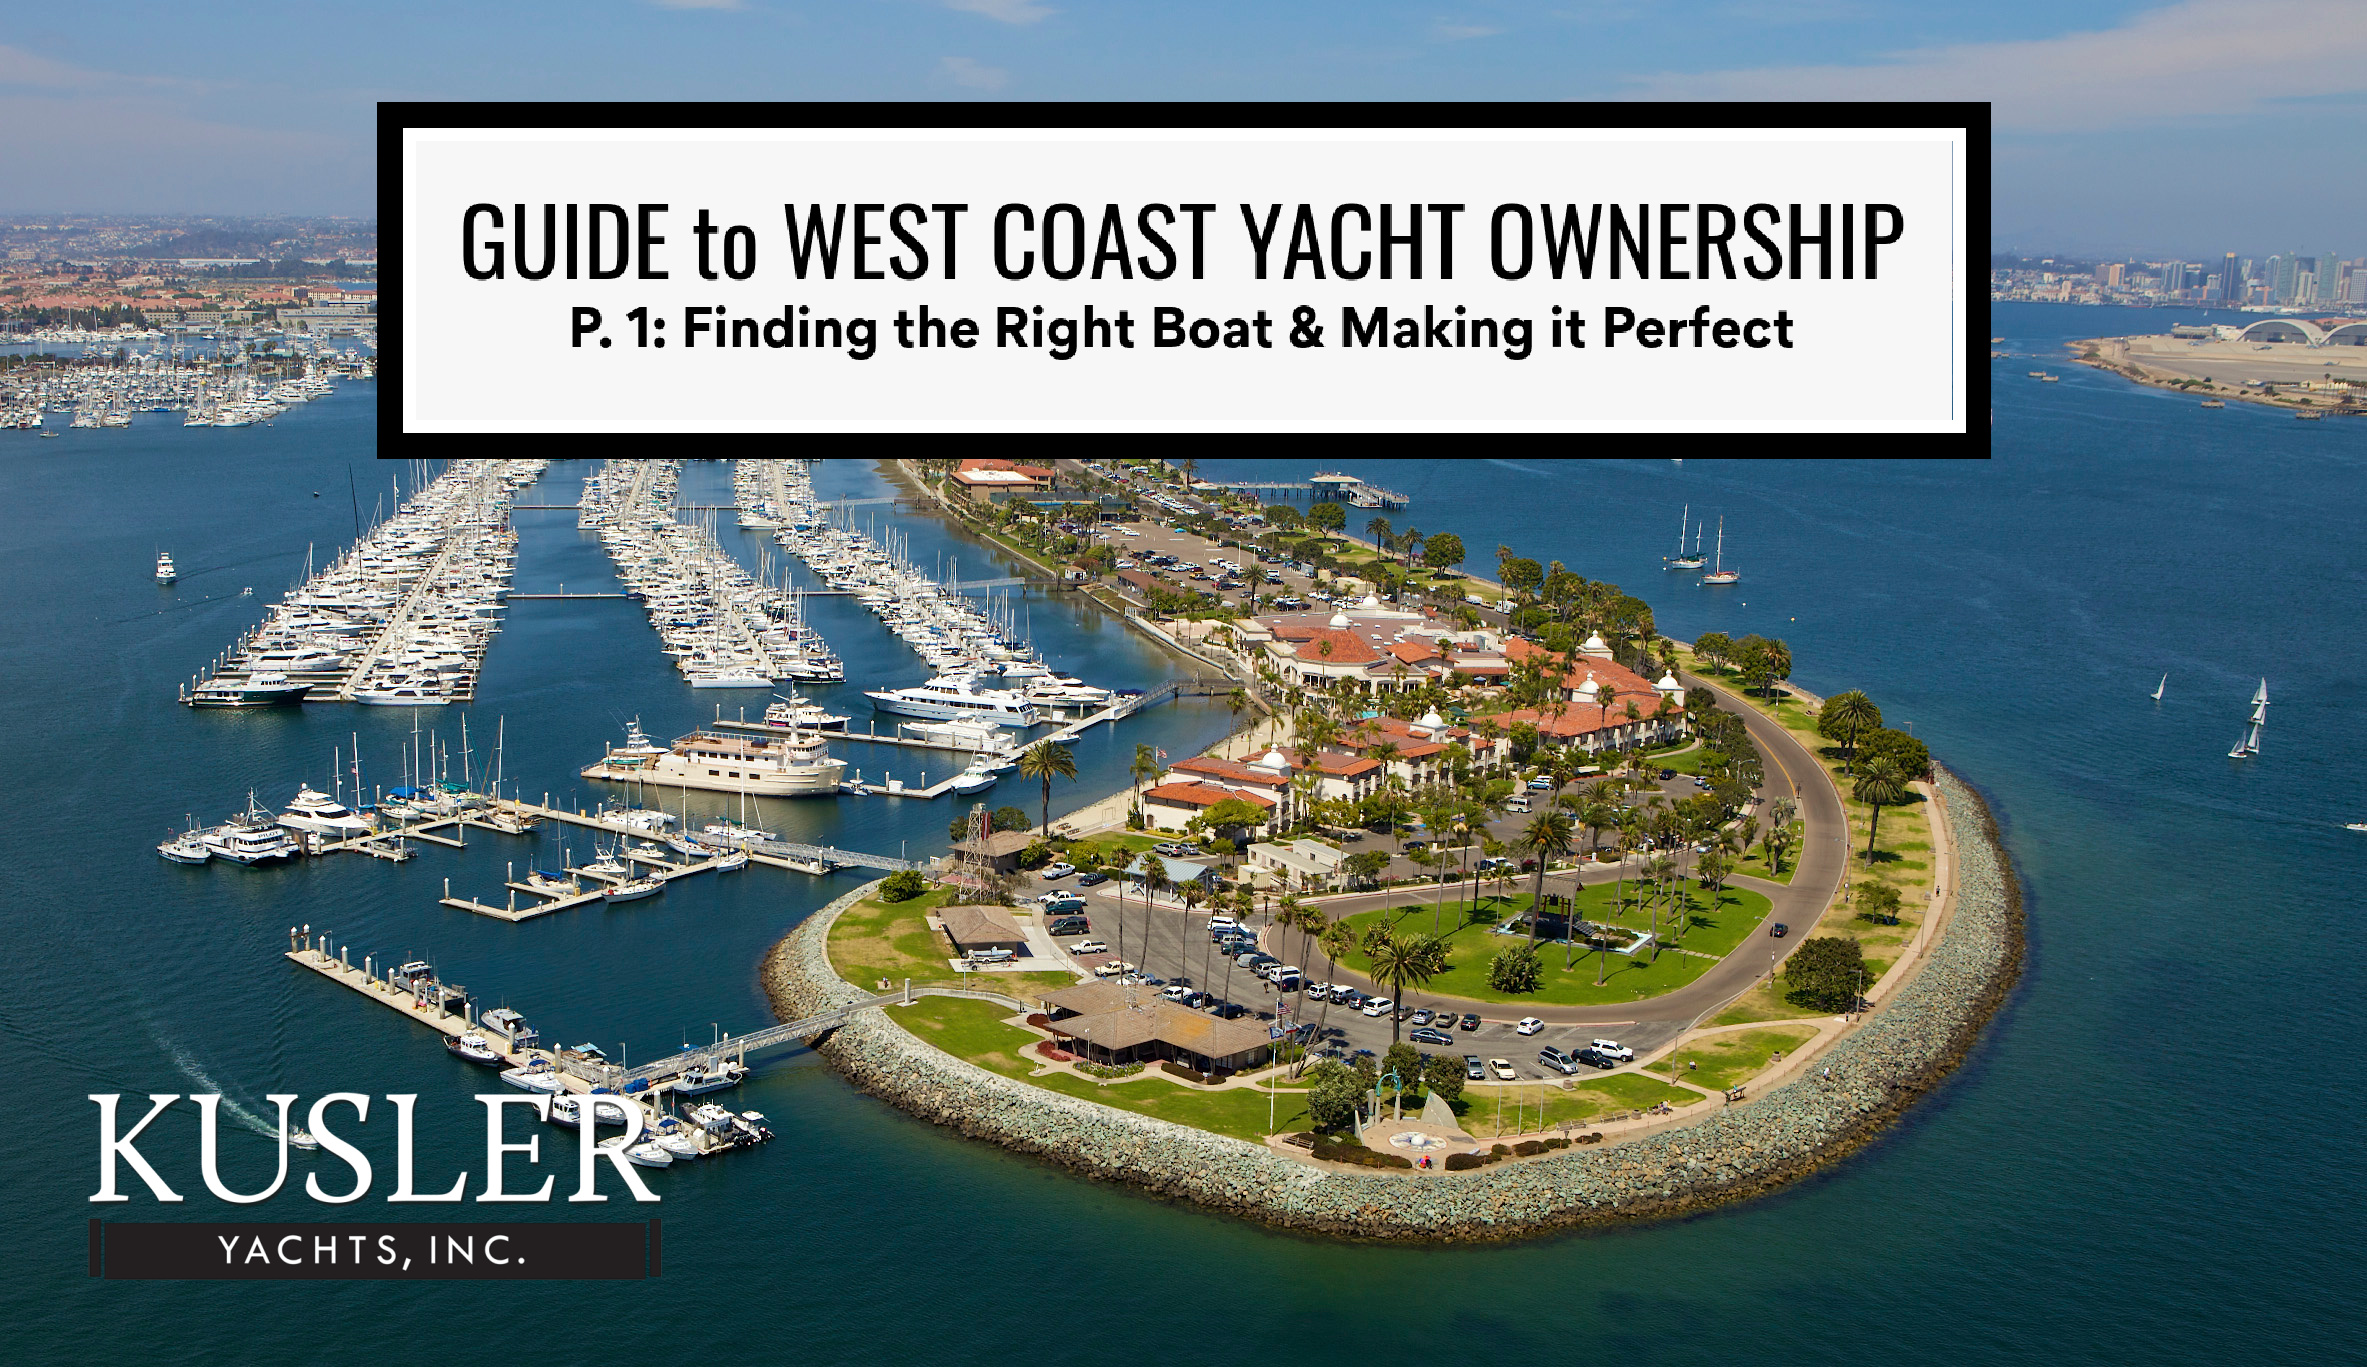 Guide to West Coast Yacht Ownership